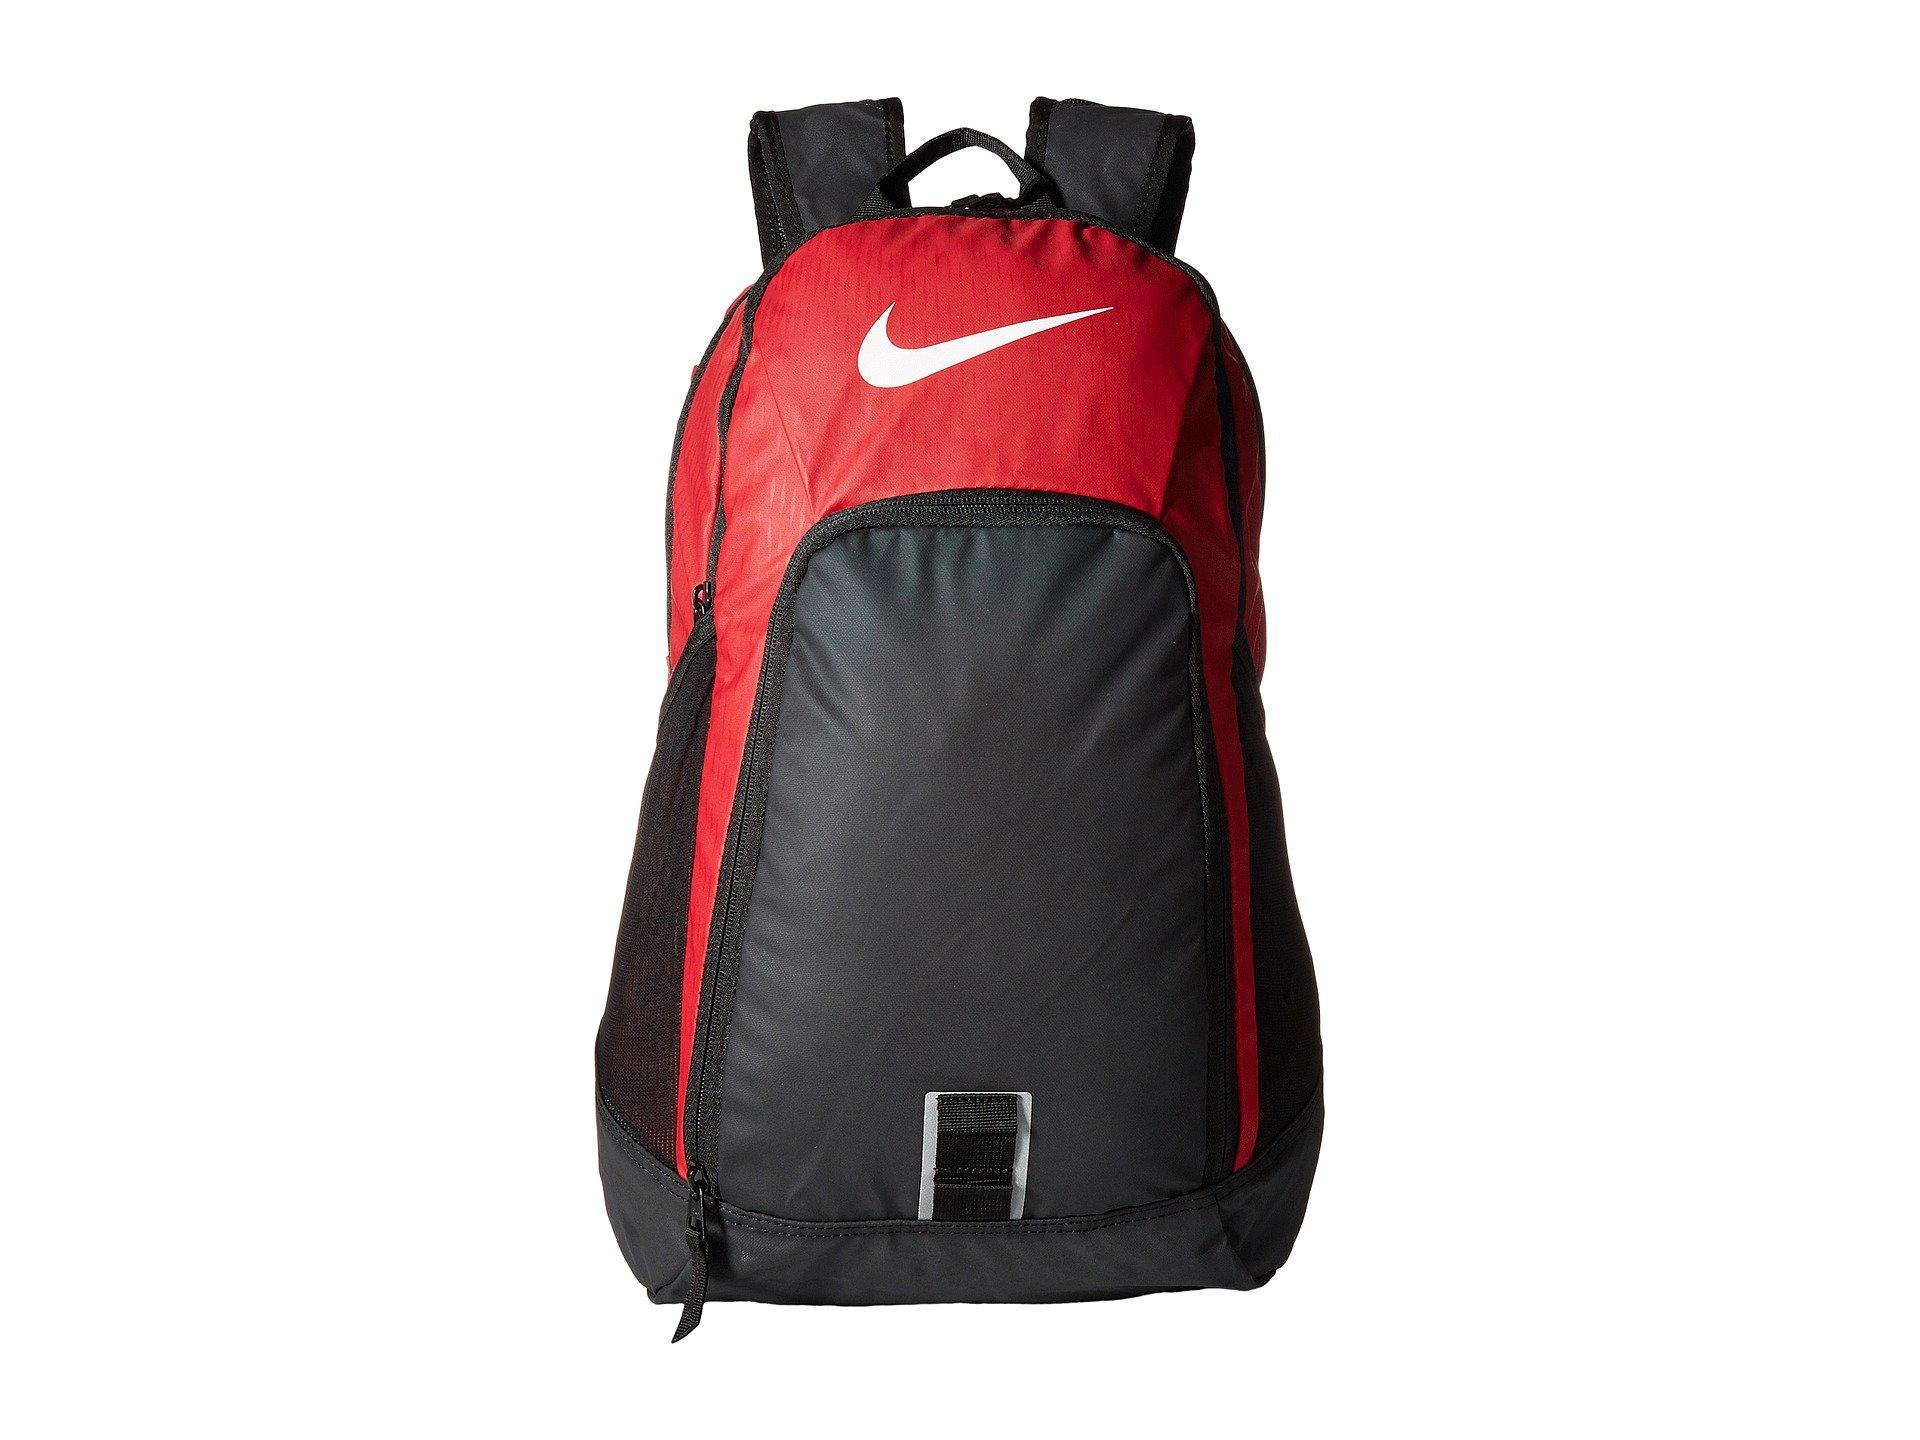 085268a164 Nike Alpha Adapt Rev Backpack In Gym Red Black White